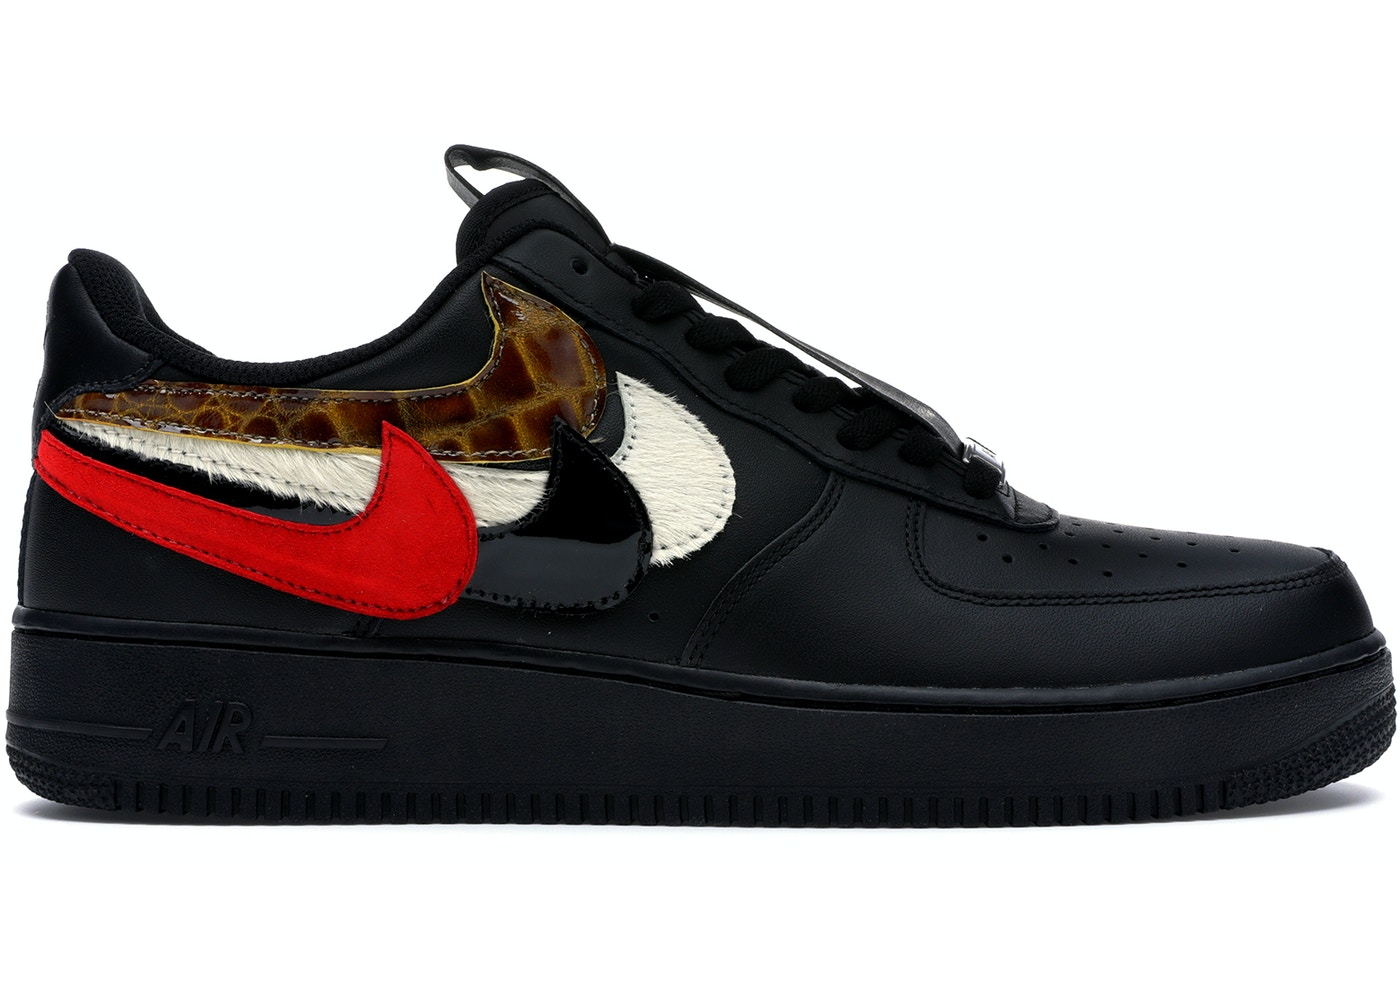 on sale d2dd4 22928 Air Force 1 Low John Geiger Misplaced Checks Black - undefined